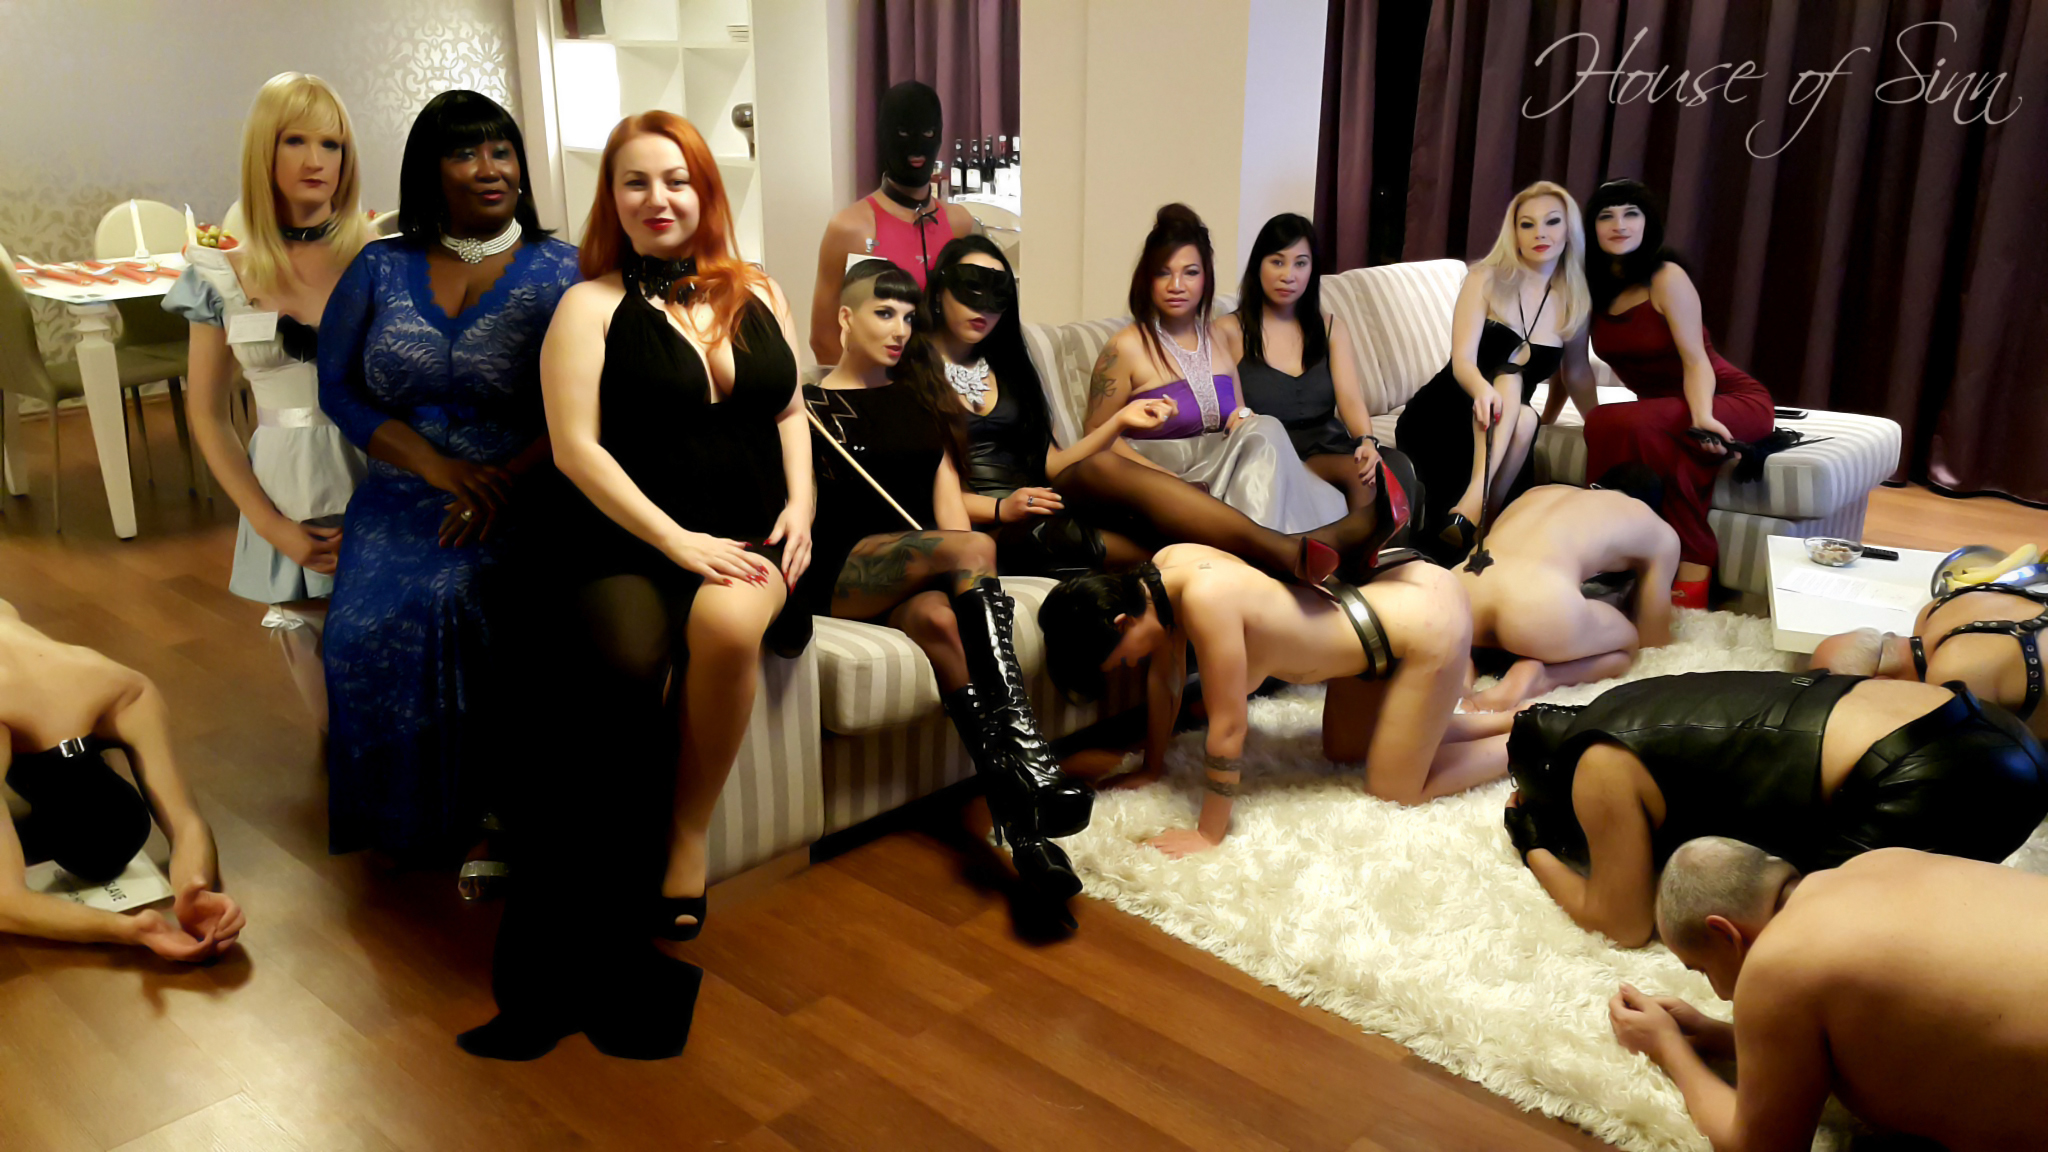 Erotic role playing real time masturbation